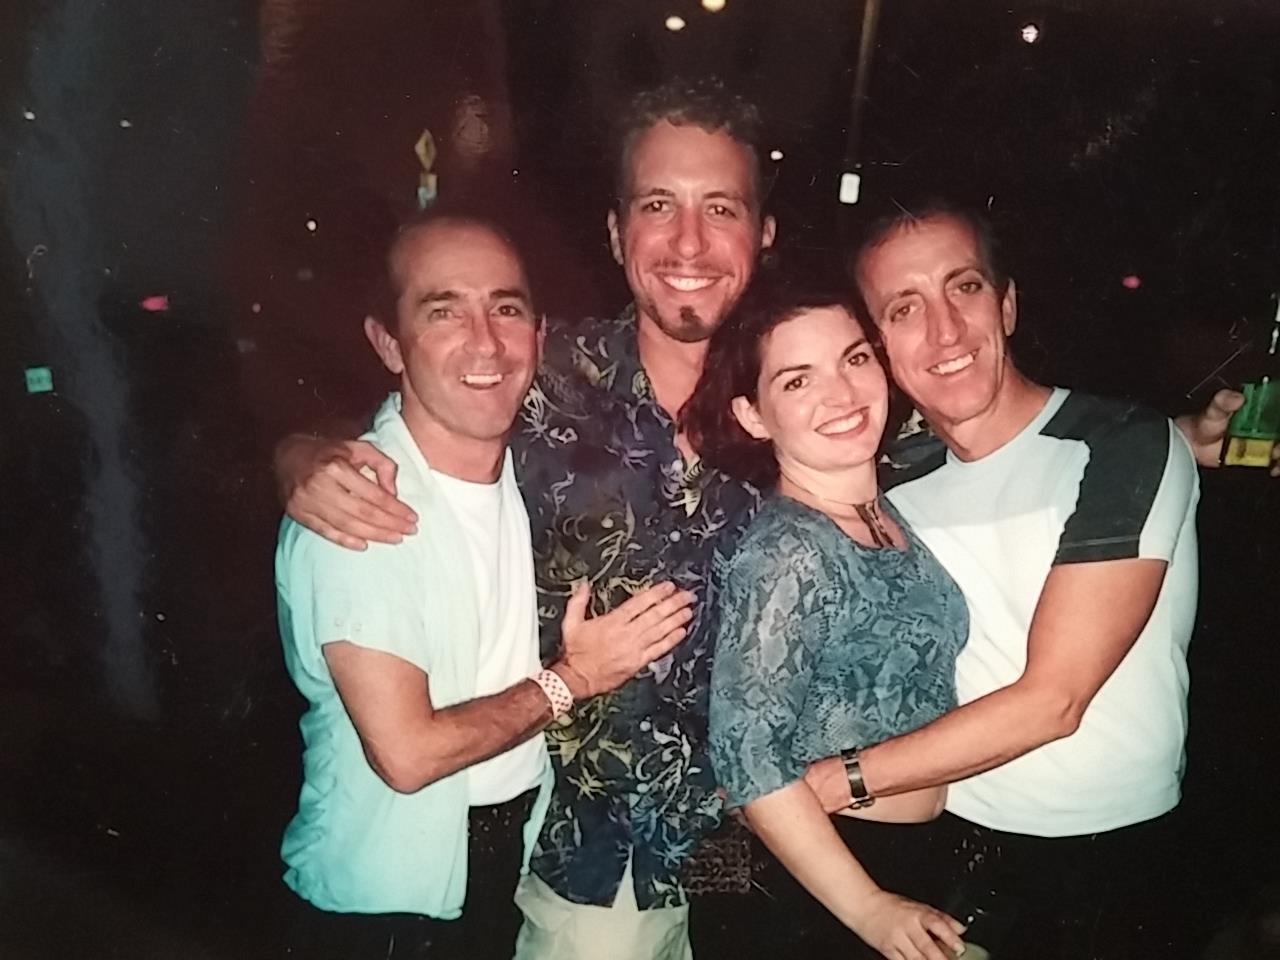 Jon Gentry, 2001, The Pirates of Penzance. Jon, John Holley, Melanie Gray Robinson, Roger Preston Smith.